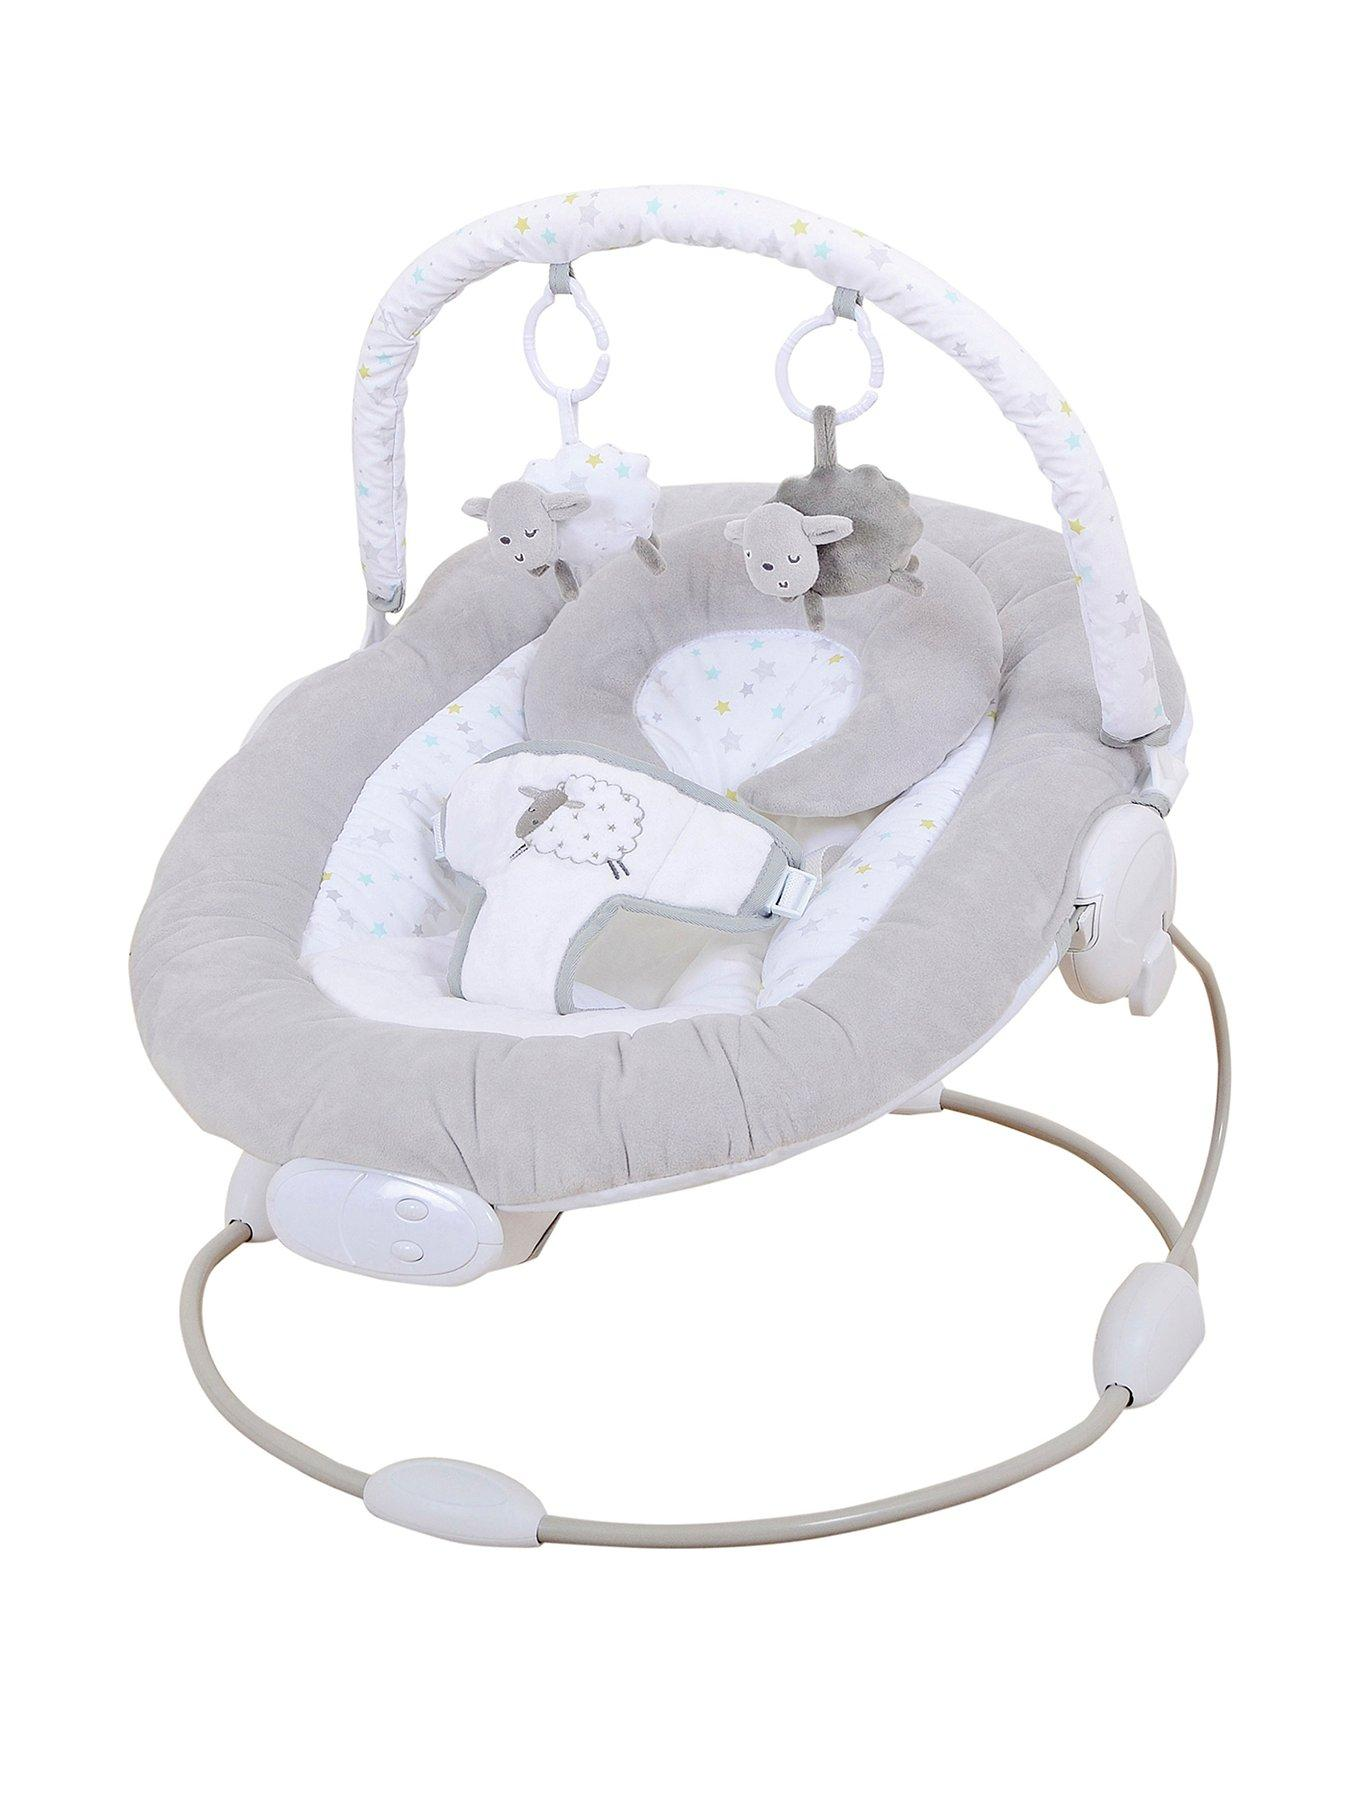 walker bouncing chair ikea recliner chairs sale baby bouncers walkers swing very co uk silvercloud counting sheep bouncer